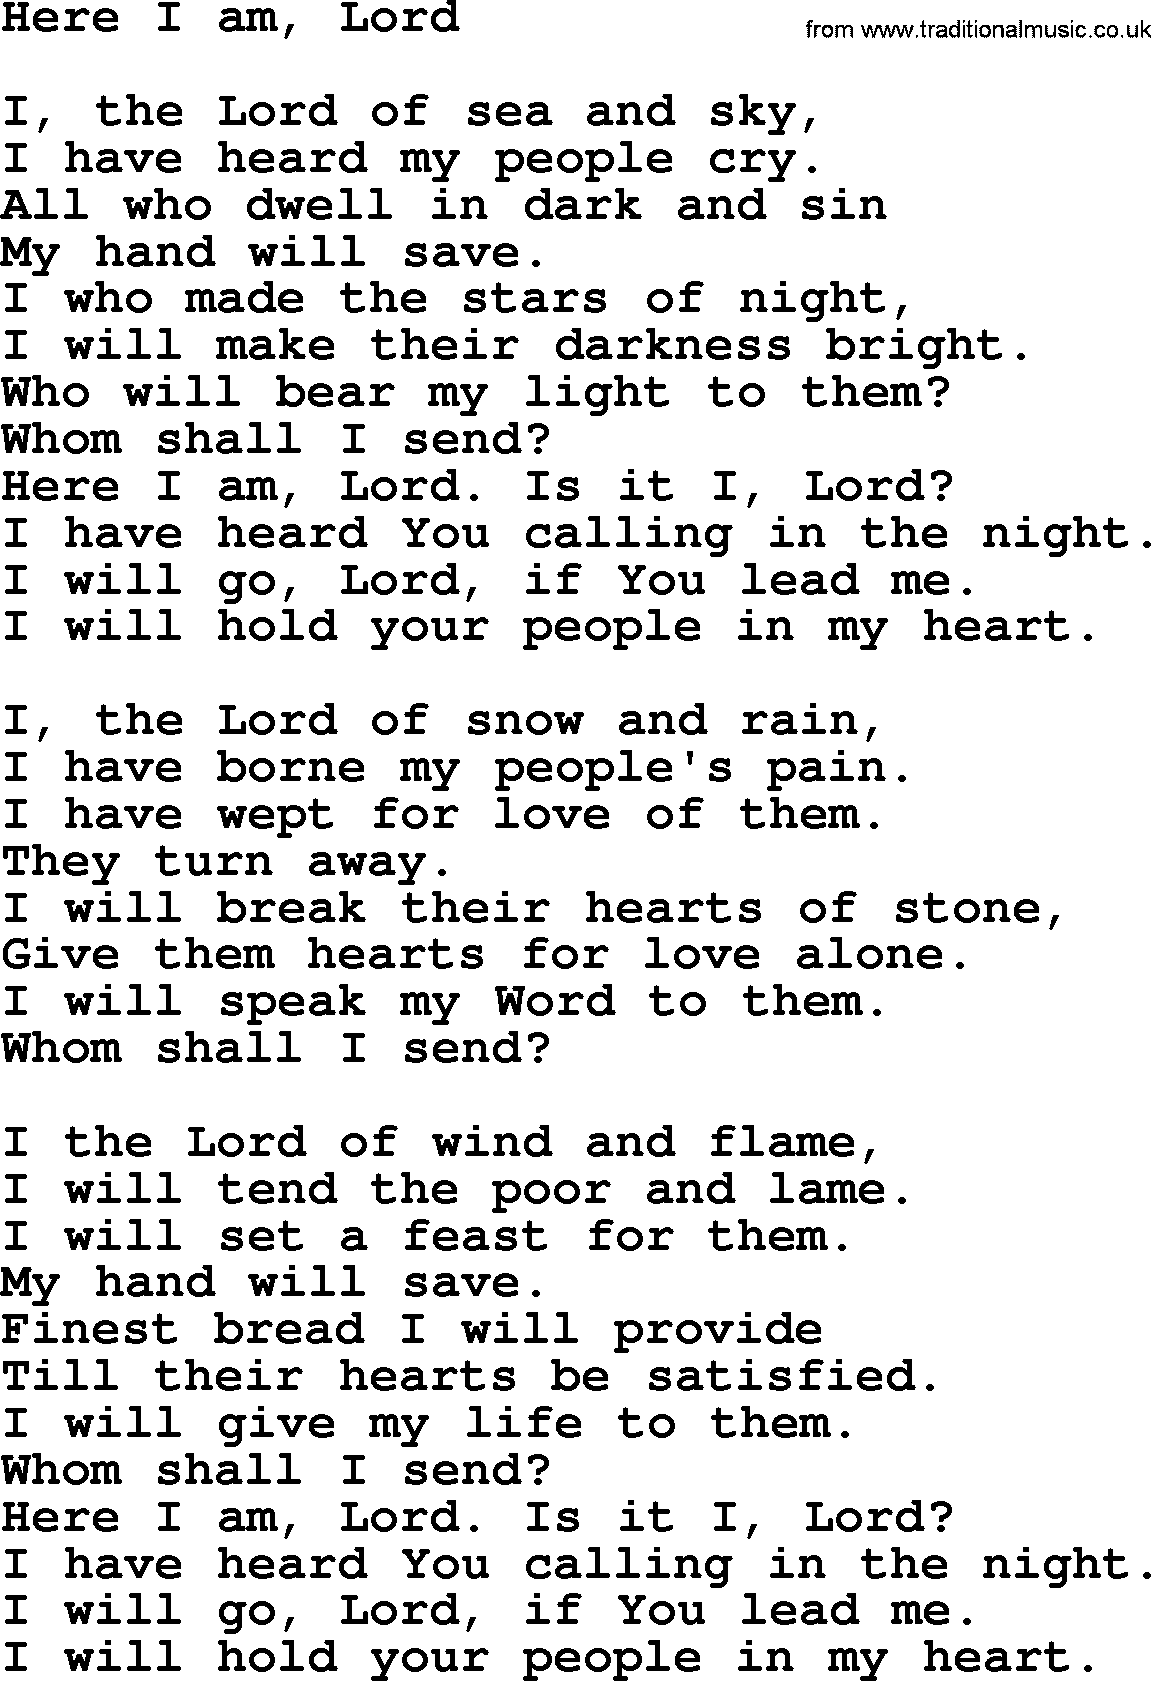 Here I am Lord| Hymn| One of my favorite church songs  😊 | Just for